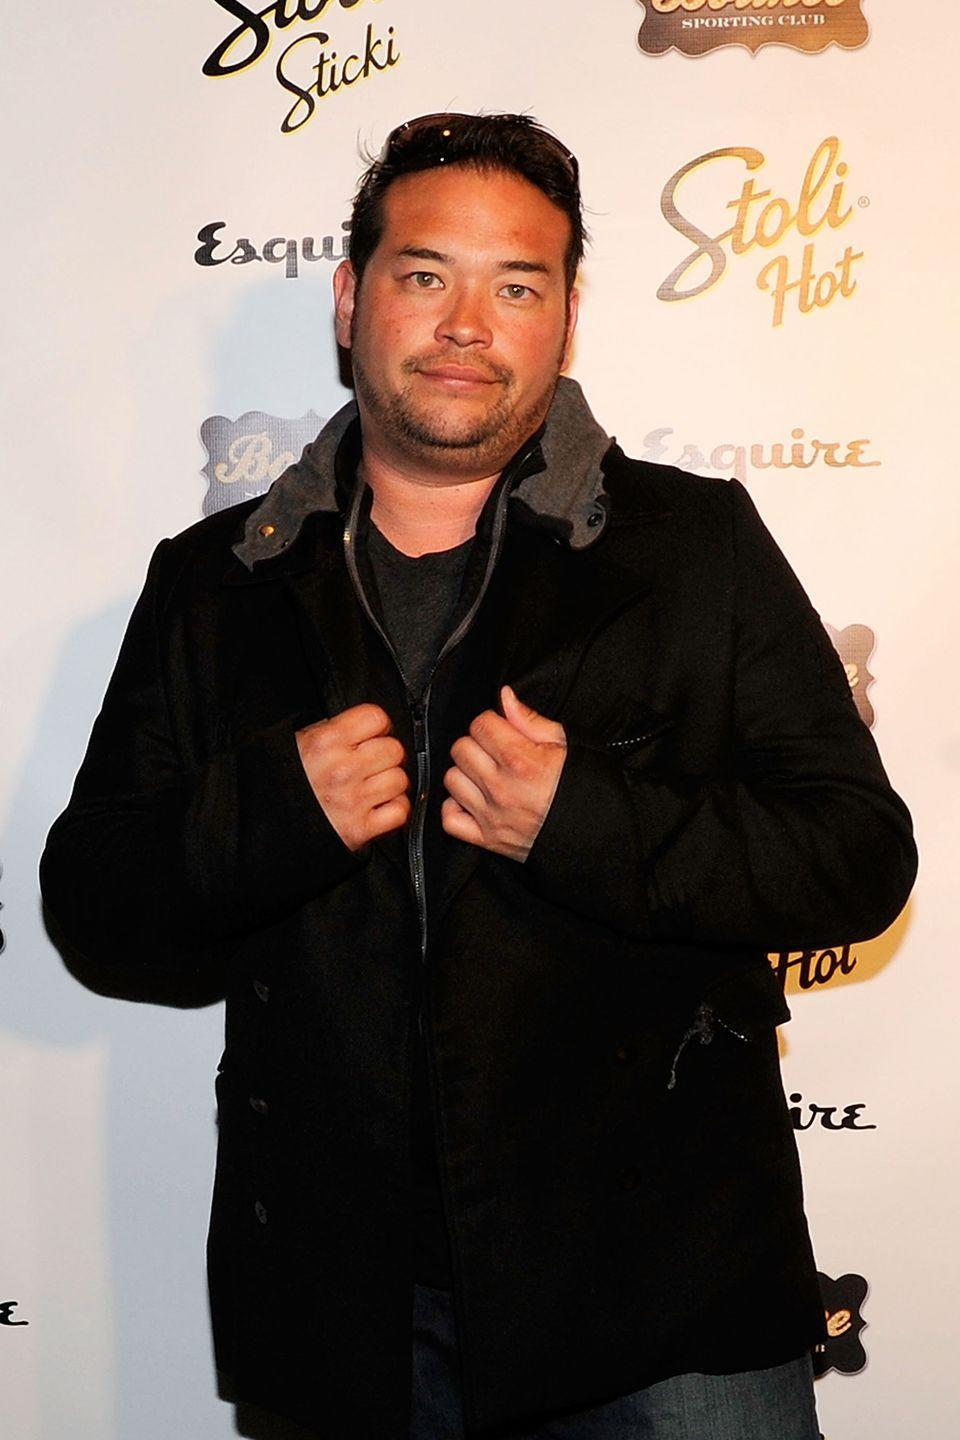 """<p>Jon Gosselin got a <a href=""""http://hollywoodlife.com/pics/photos-pics-celebrity-tattoos-misspelled-accidents-rihanna-britney-spears-david-beckham-hayden-panettiere-justin-timberlake/#!3/081210_celeb_tattoos_jon_gosselin"""" rel=""""nofollow noopener"""" target=""""_blank"""" data-ylk=""""slk:giant dragon tattoo"""" class=""""link rapid-noclick-resp"""">giant dragon tattoo</a> on his back with his girlfriend Ellen Ross' name on a scroll underneath it. However, the ink artist accidentally wrote """"Erin"""" instead of """"Ellen."""" Whoops.</p>"""